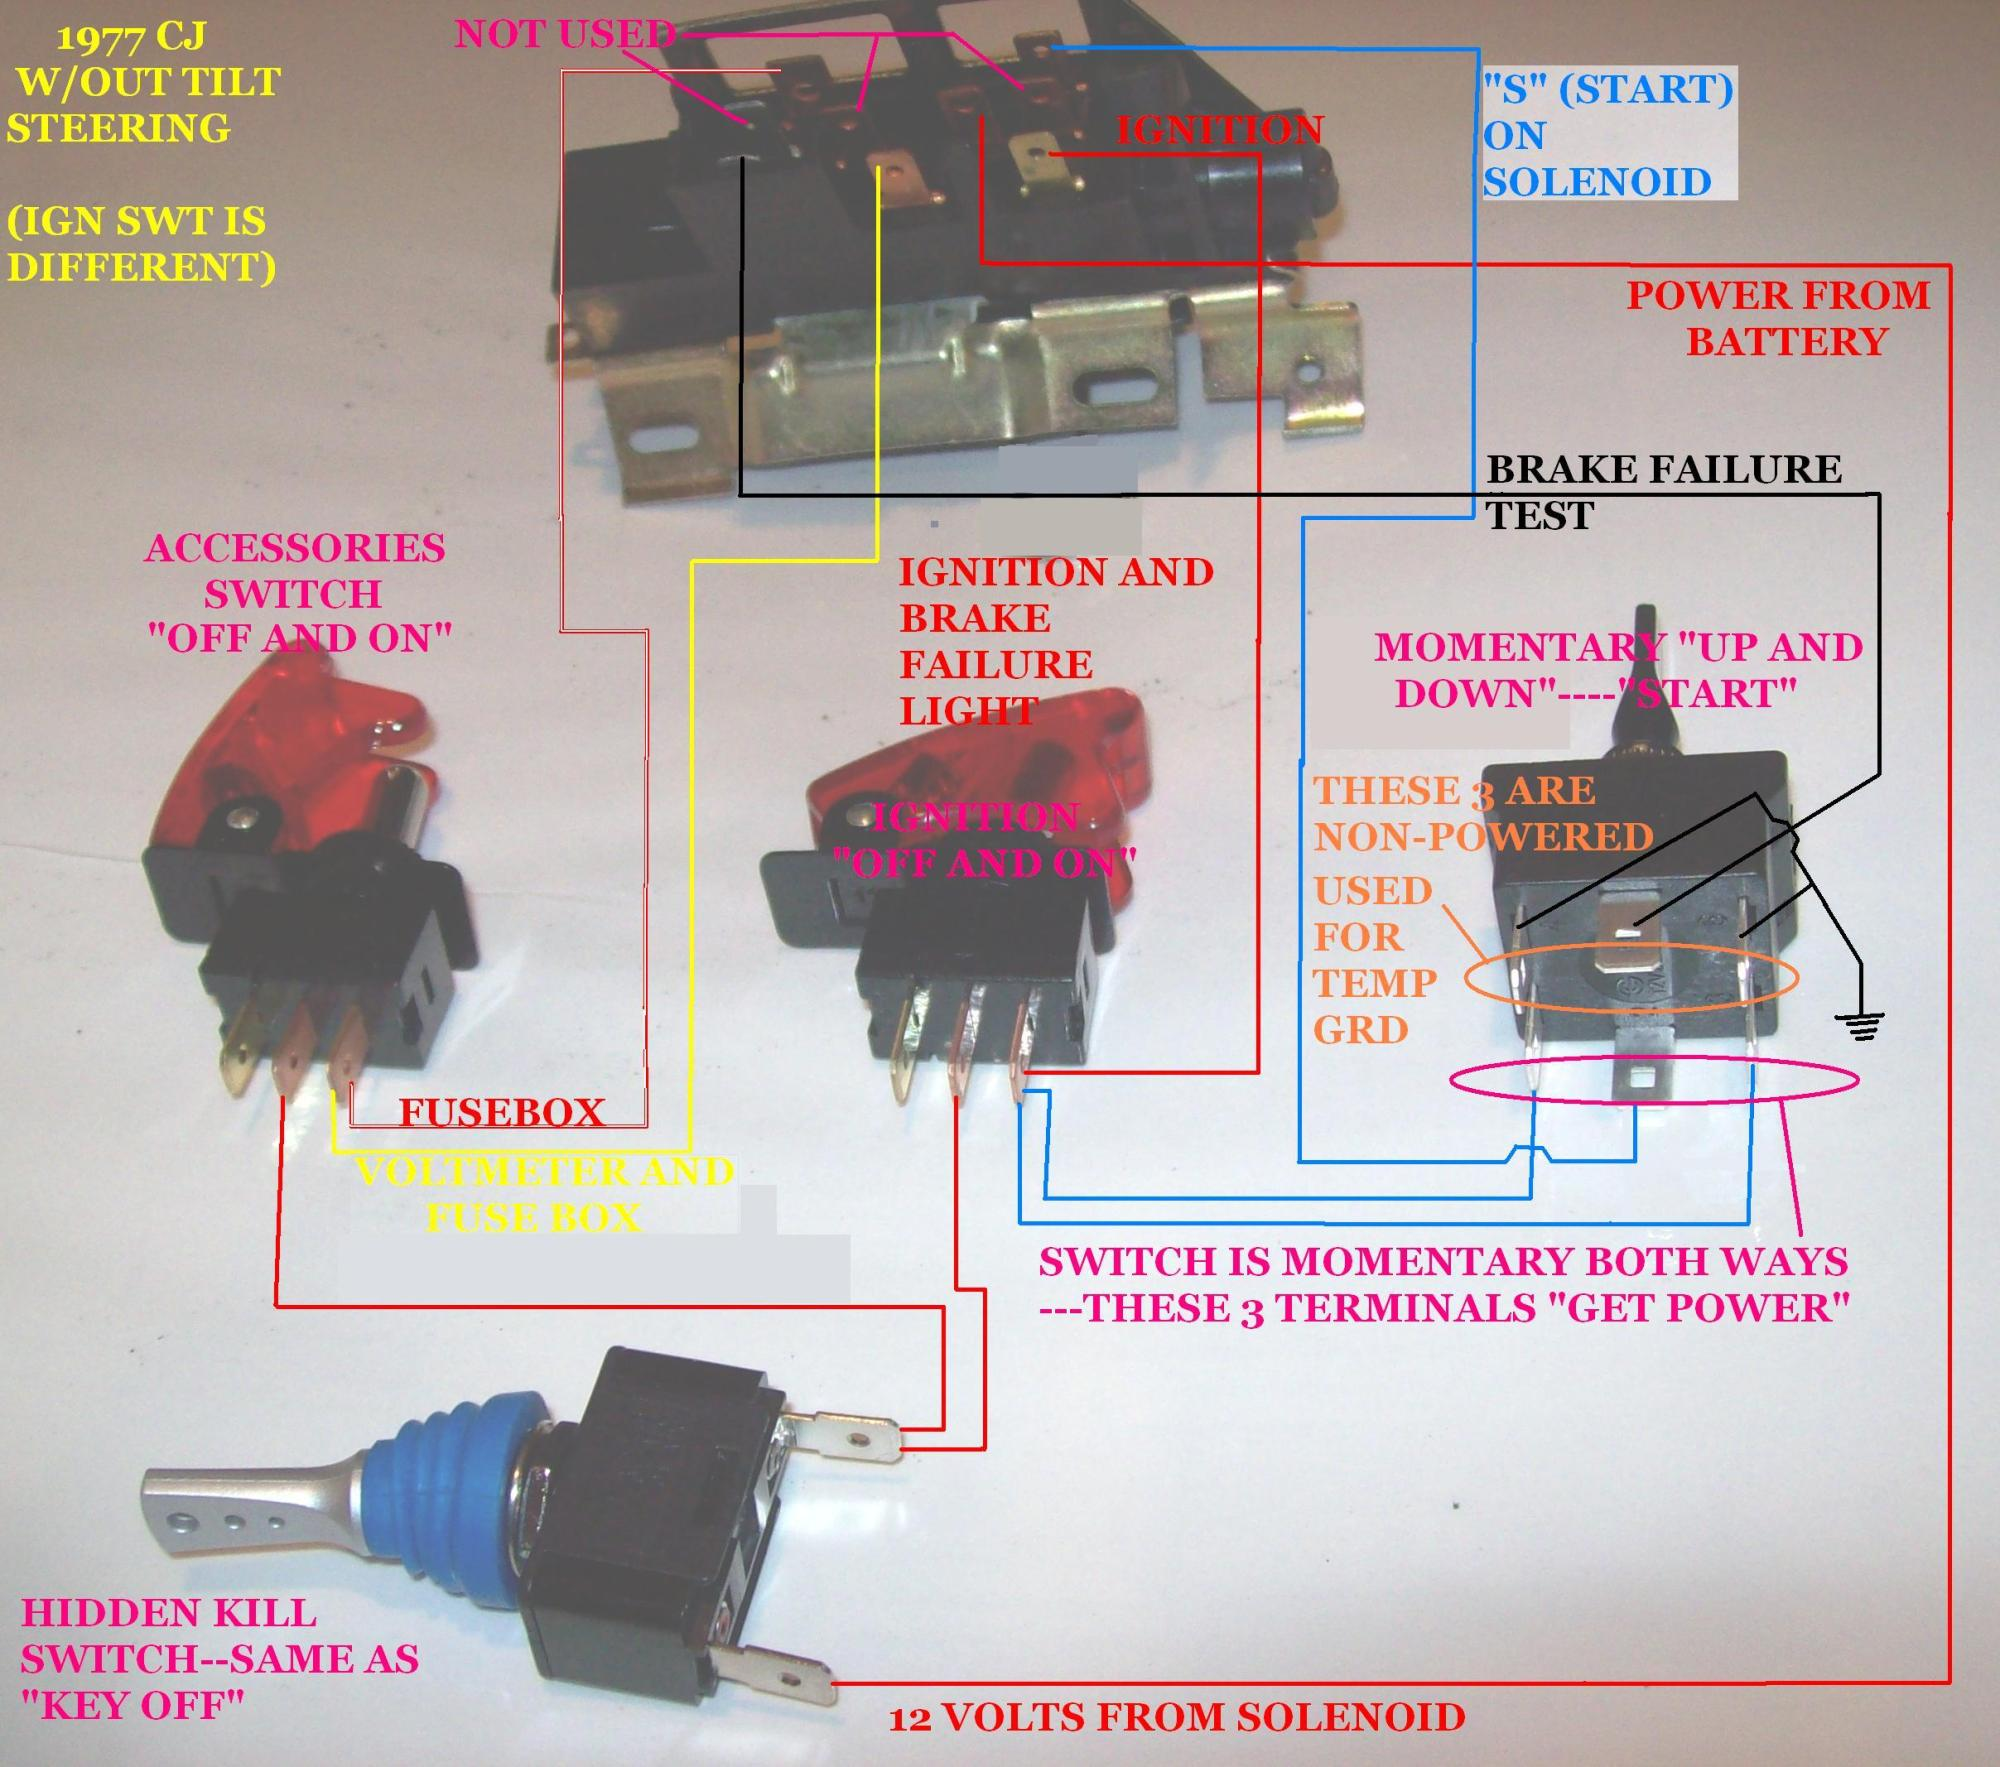 hight resolution of 1977 jeep cj5 ignition switch wiring house wiring diagram symbols u2022 1996 jeep cherokee ignition